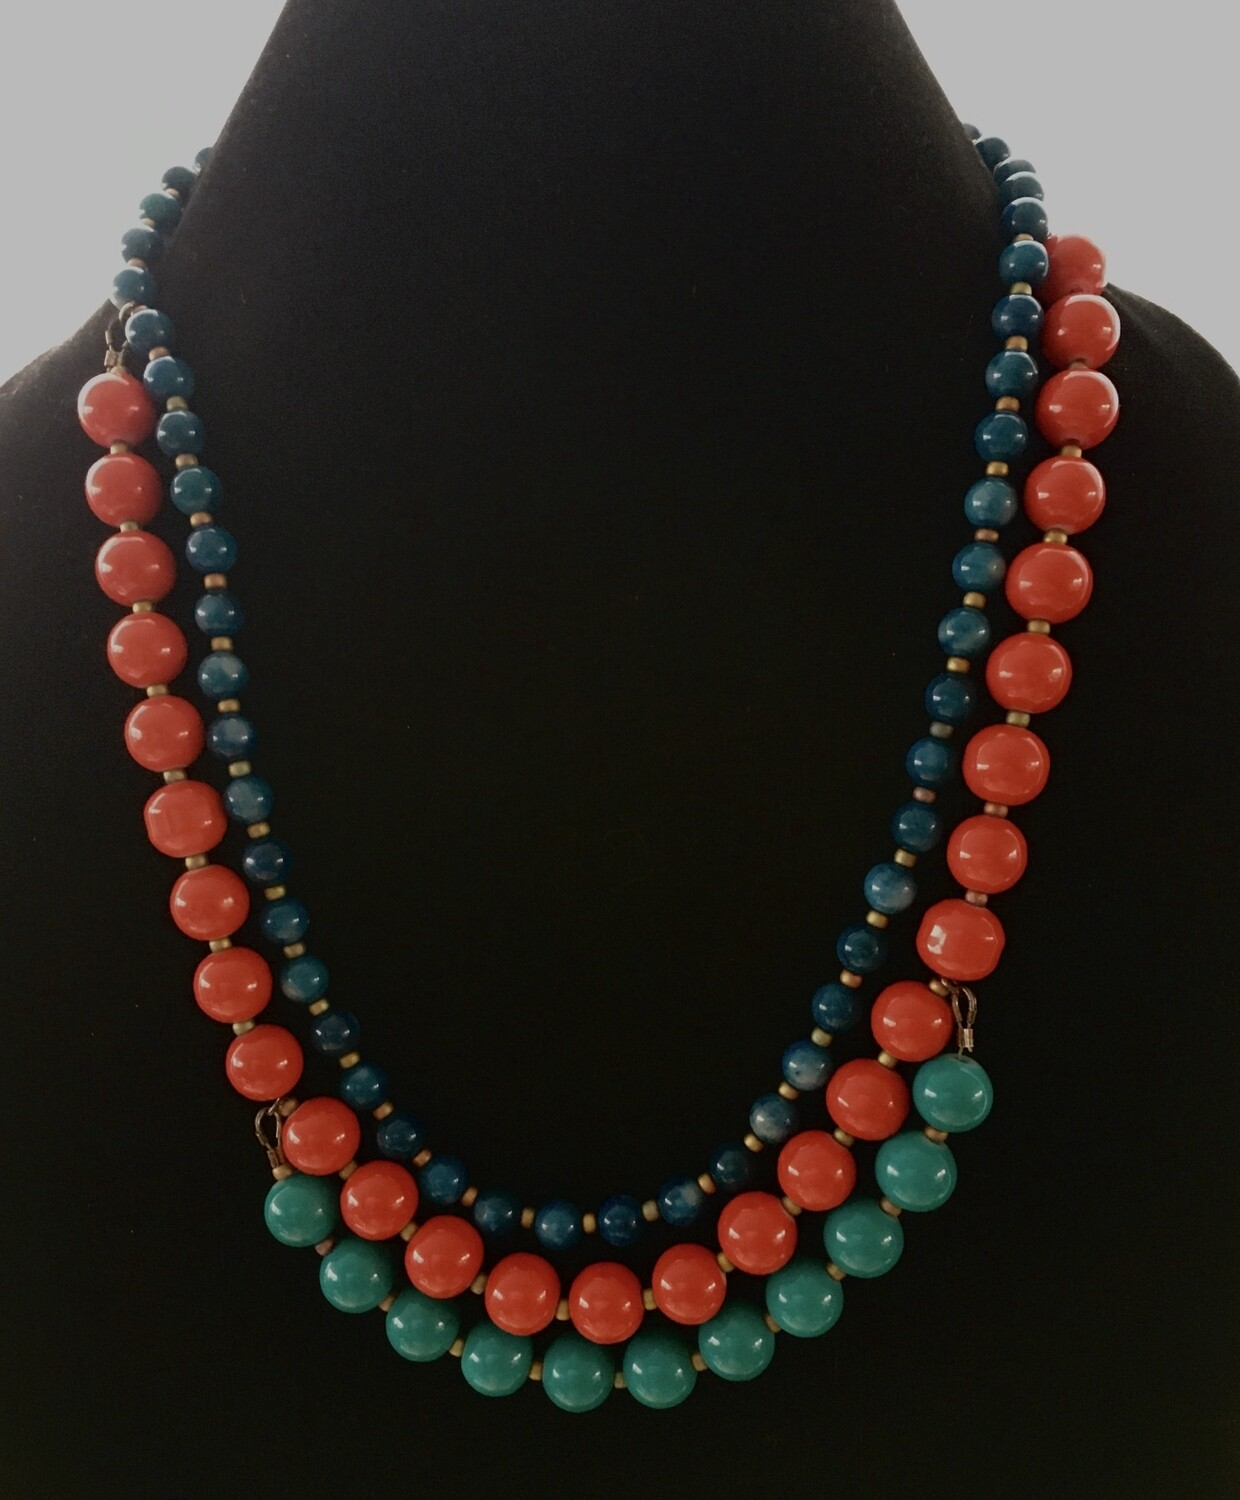 Tri- coloured beads necklace